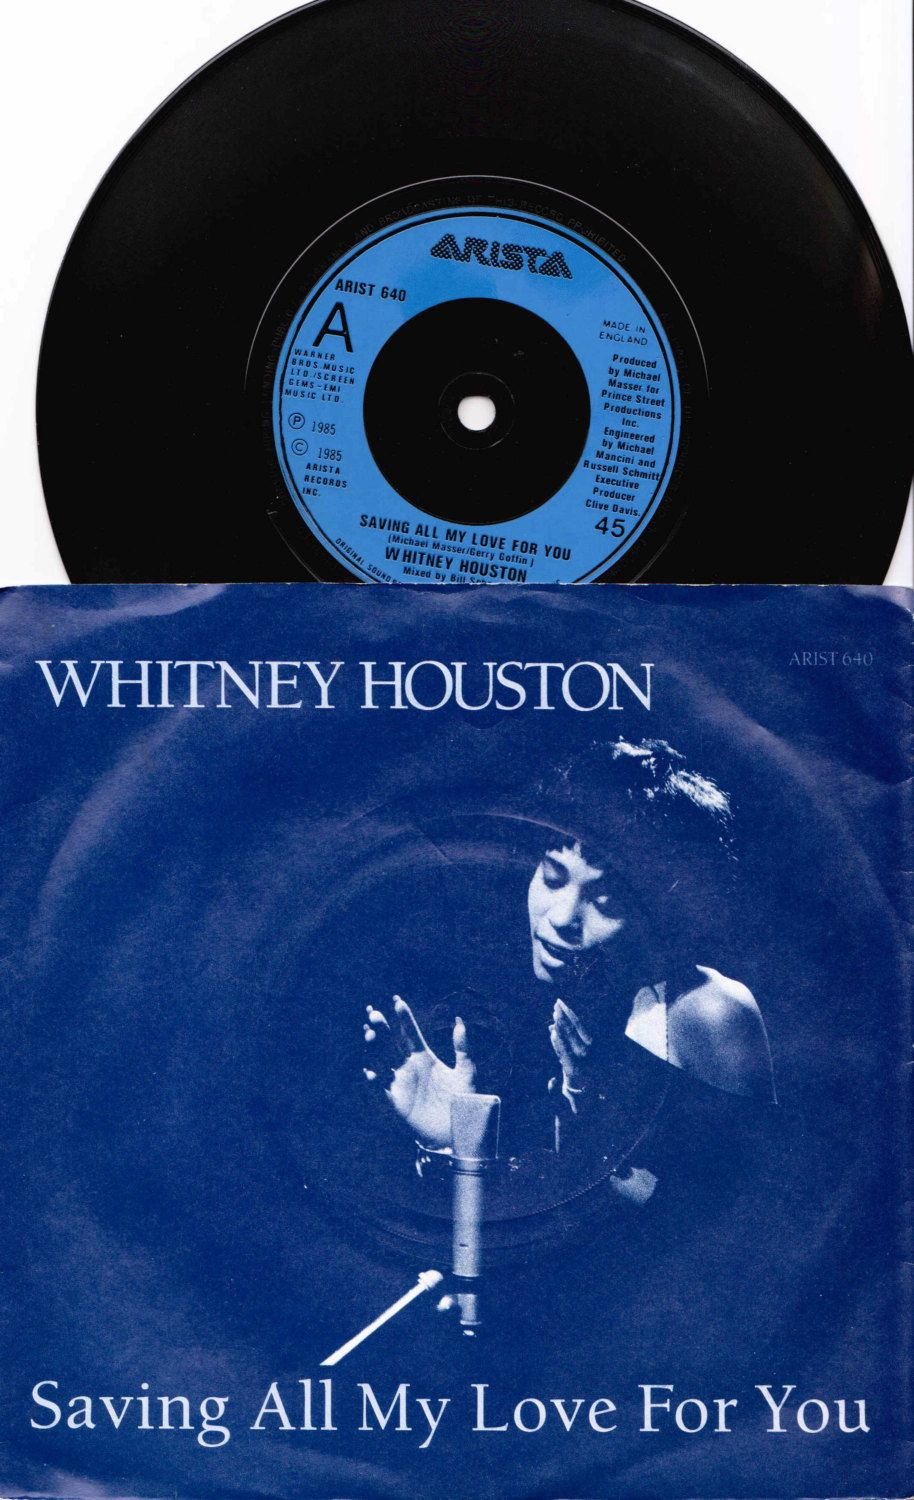 Whitney Houston Saving All My Love For You 1985 Uk Issue 7 Vinyl 45 Rpm Record Soul Dance Pop 80s Arist640 Free S H Etsy Favorites Whitney Houston Music Arista Records